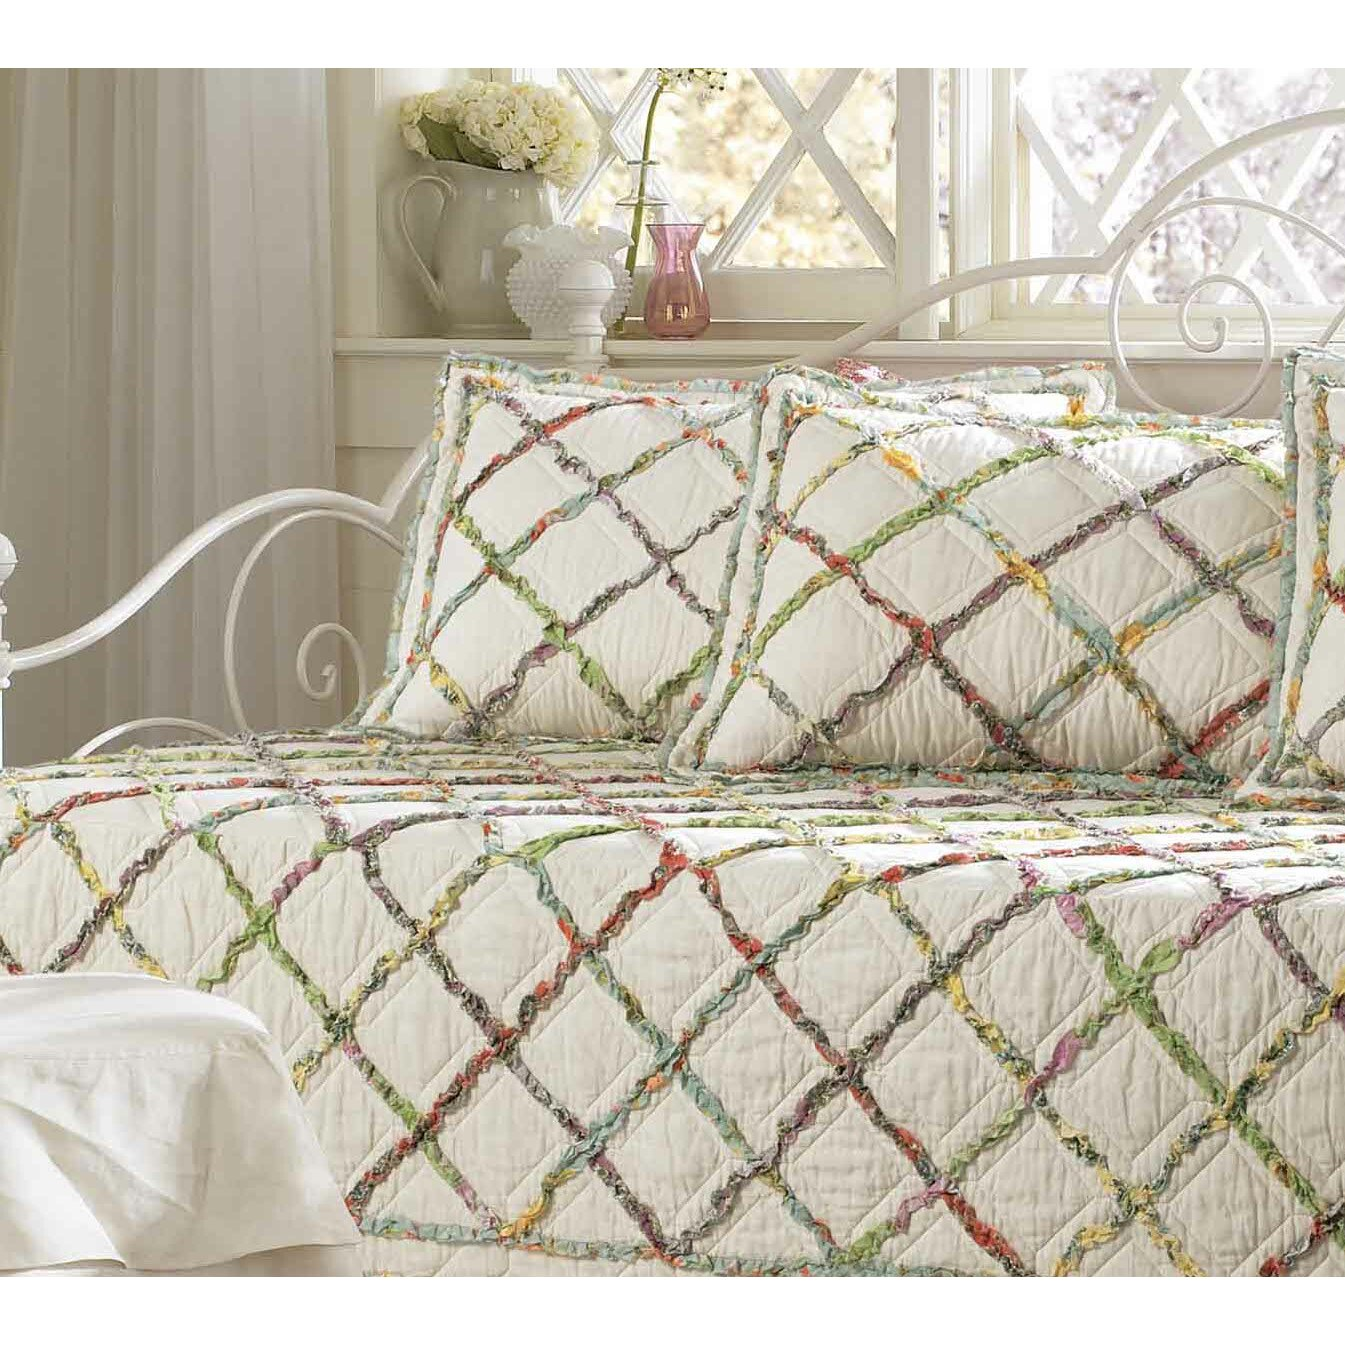 laura ashley home ruffled garden reversible quilt. Black Bedroom Furniture Sets. Home Design Ideas